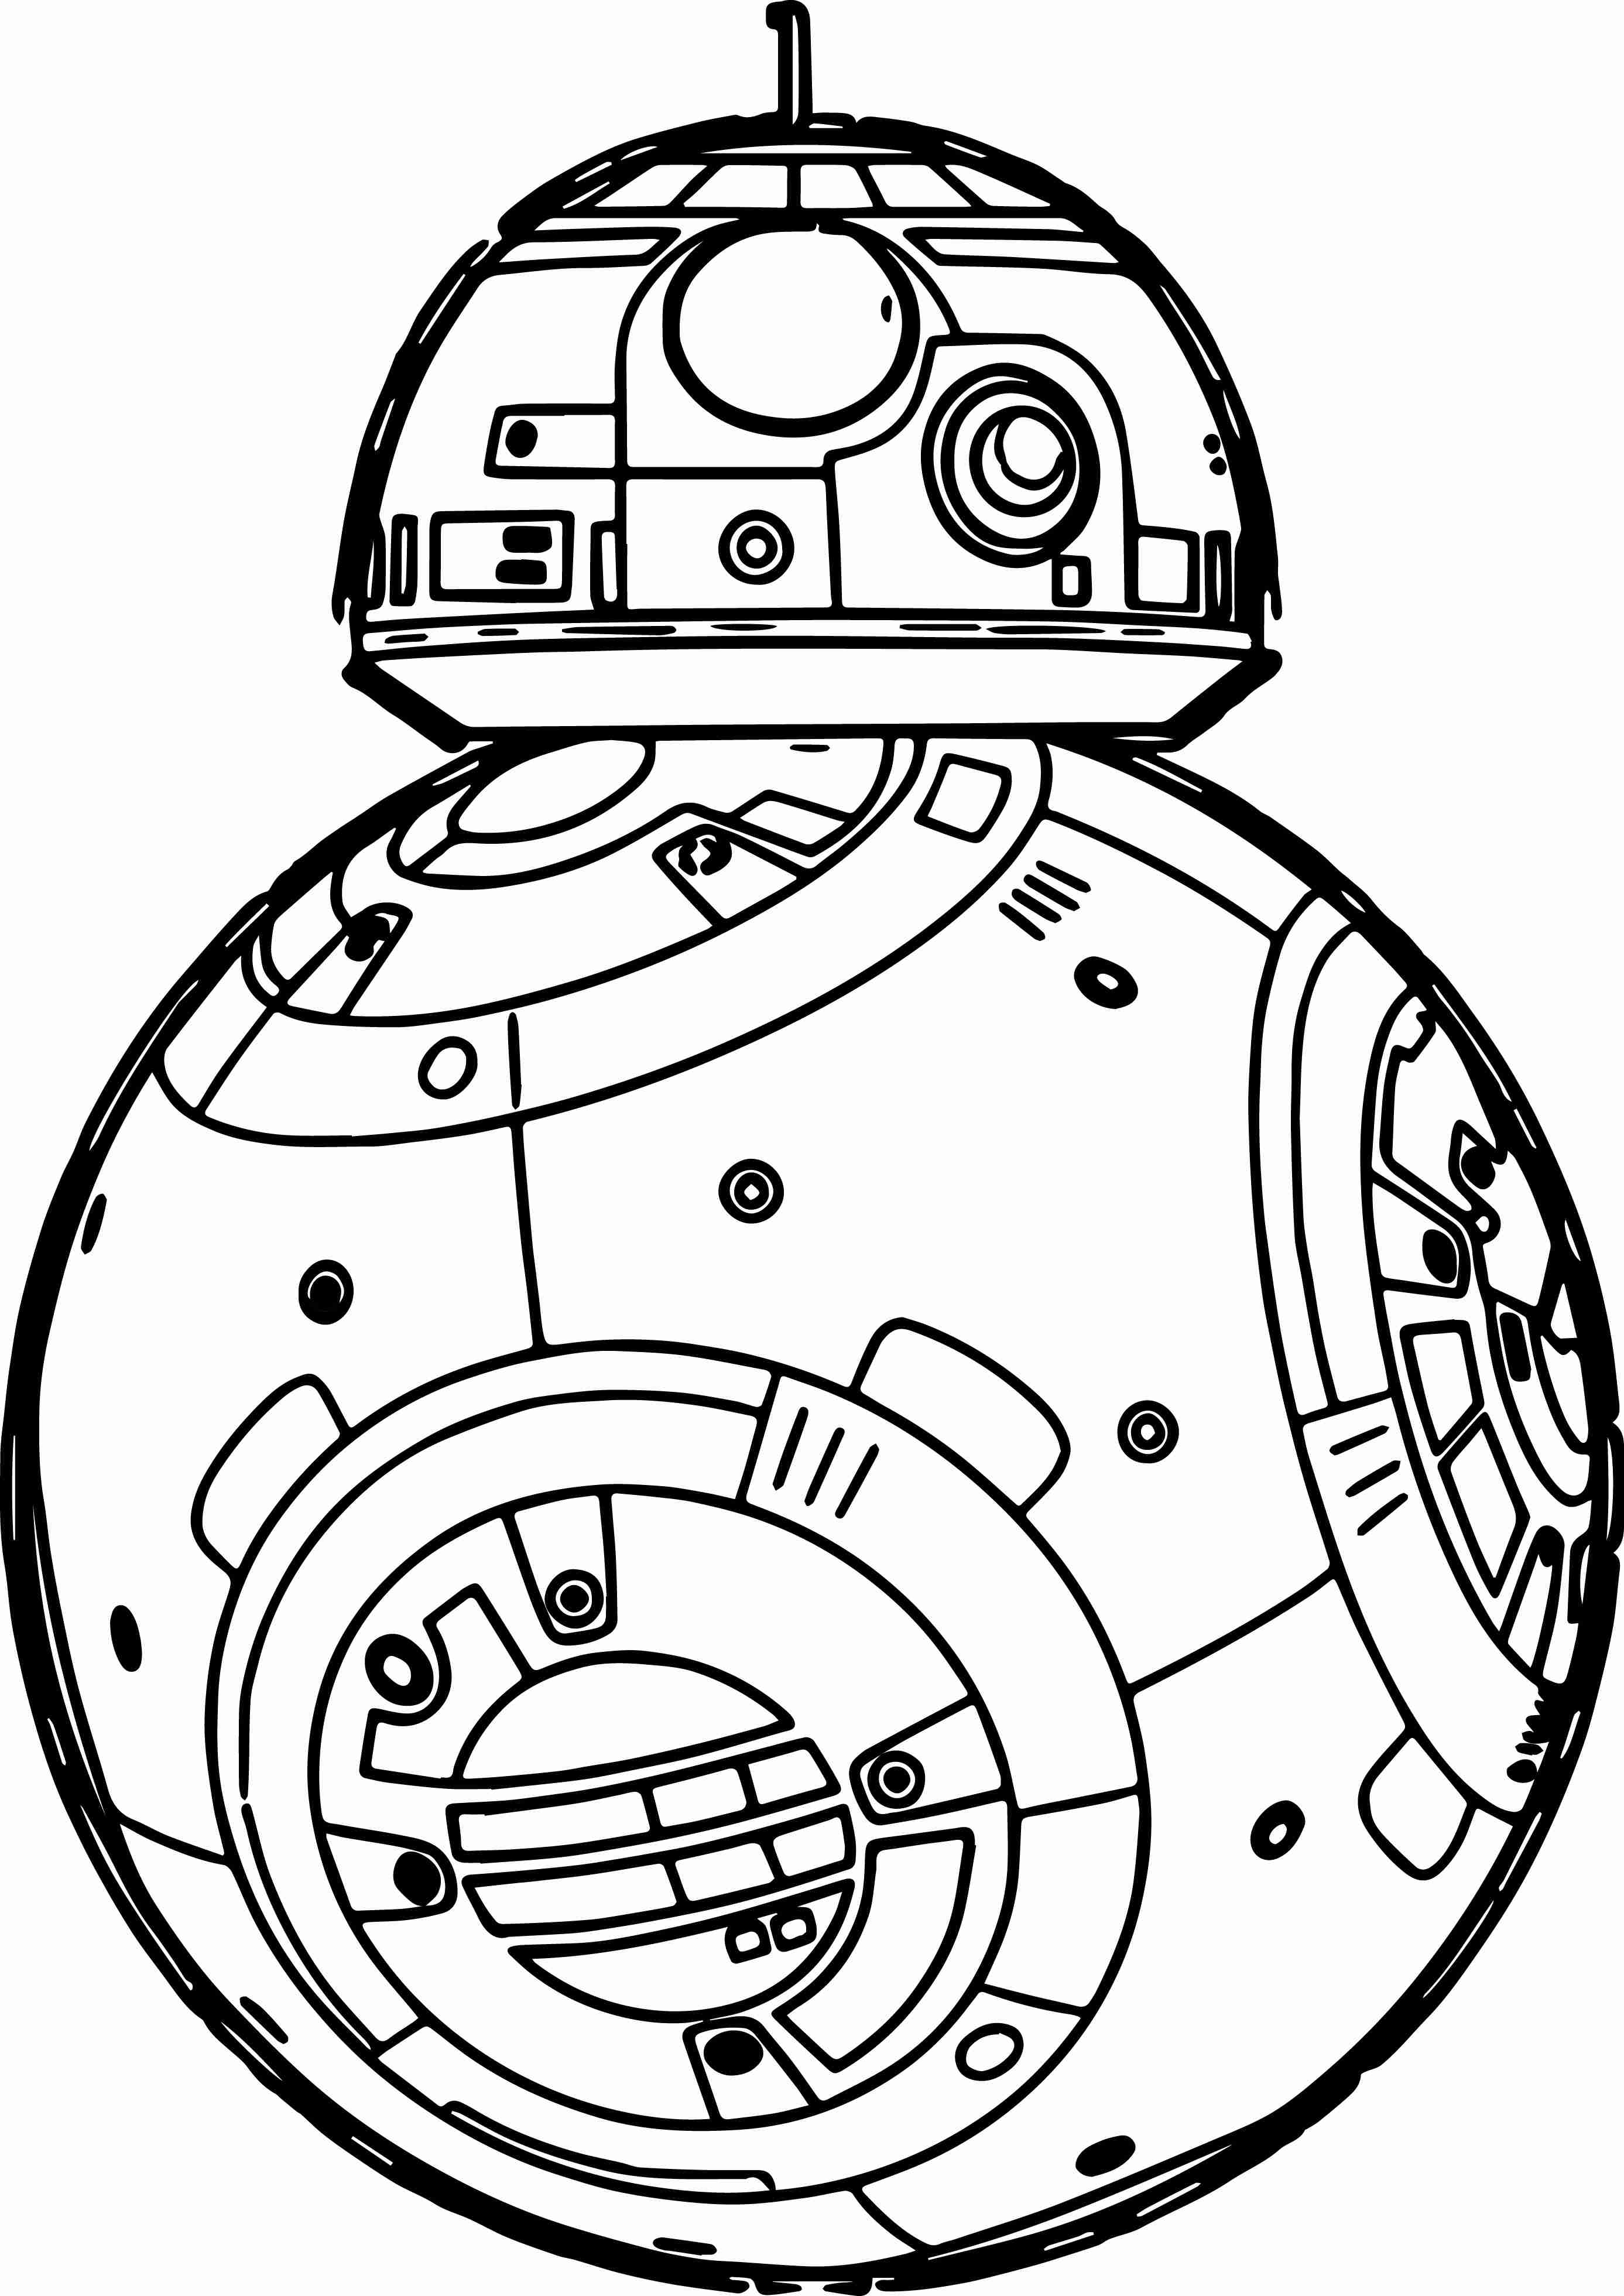 star wars coloring pages to print star wars stormtrooper coloring pages printable coloring pages to wars star coloring print